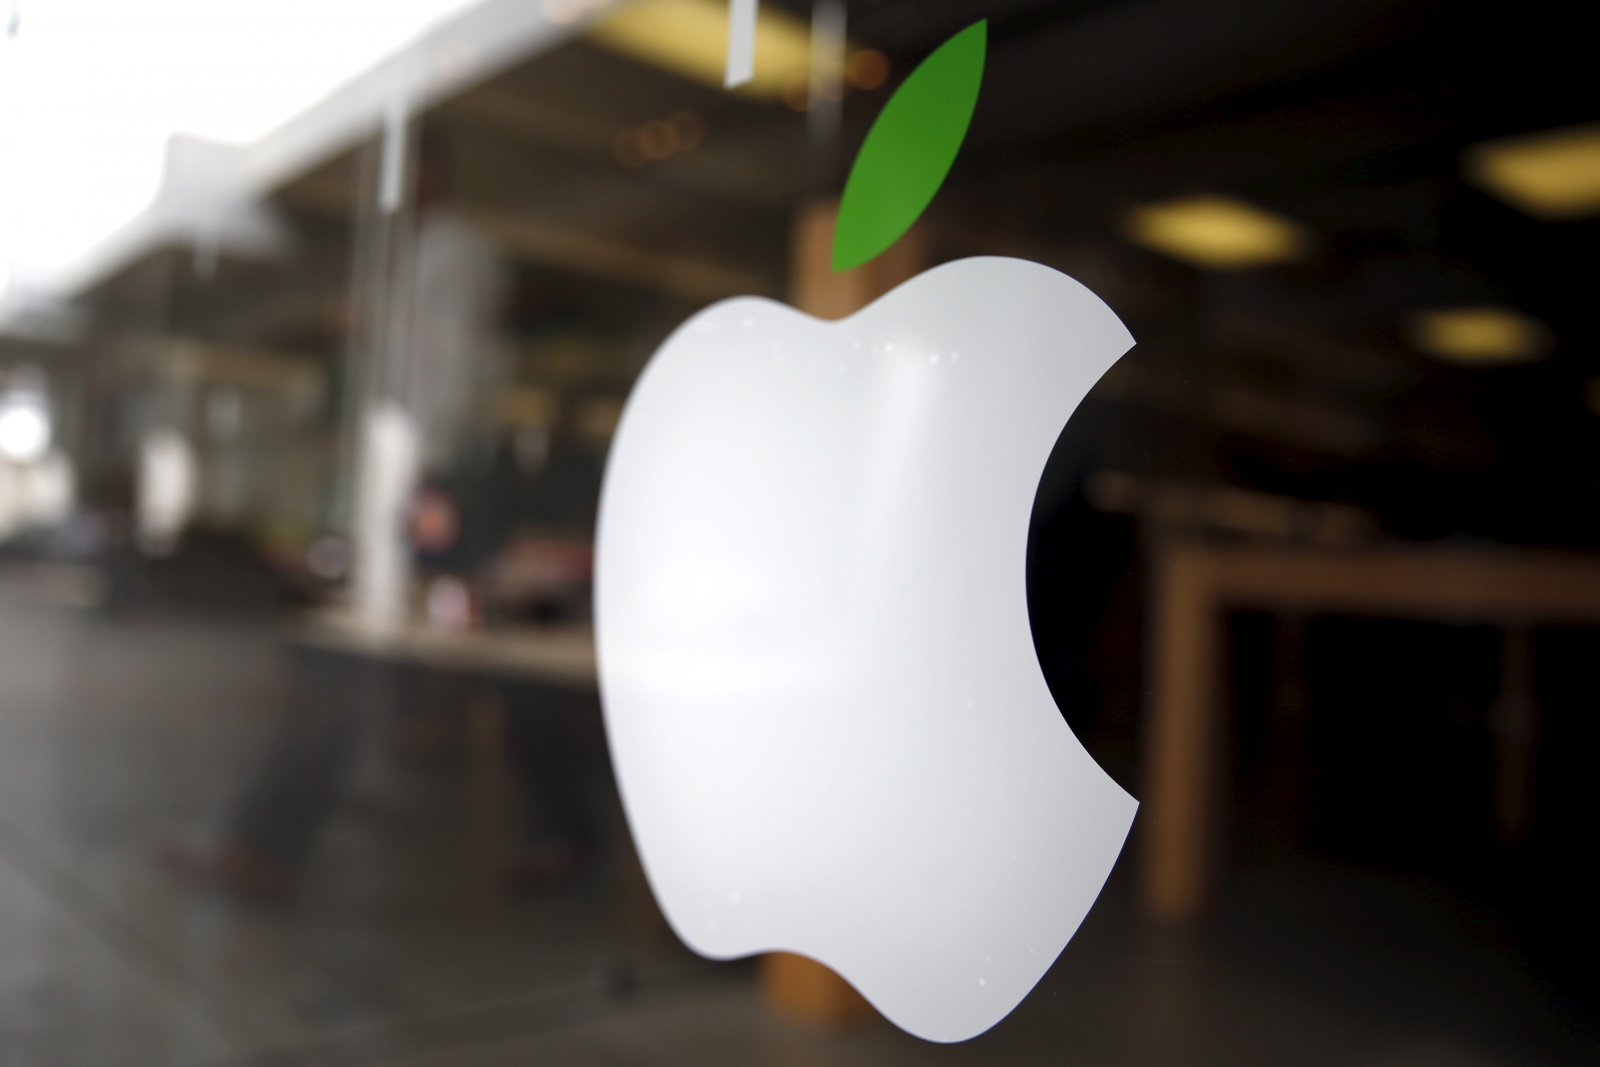 Apple to open R&D center in China